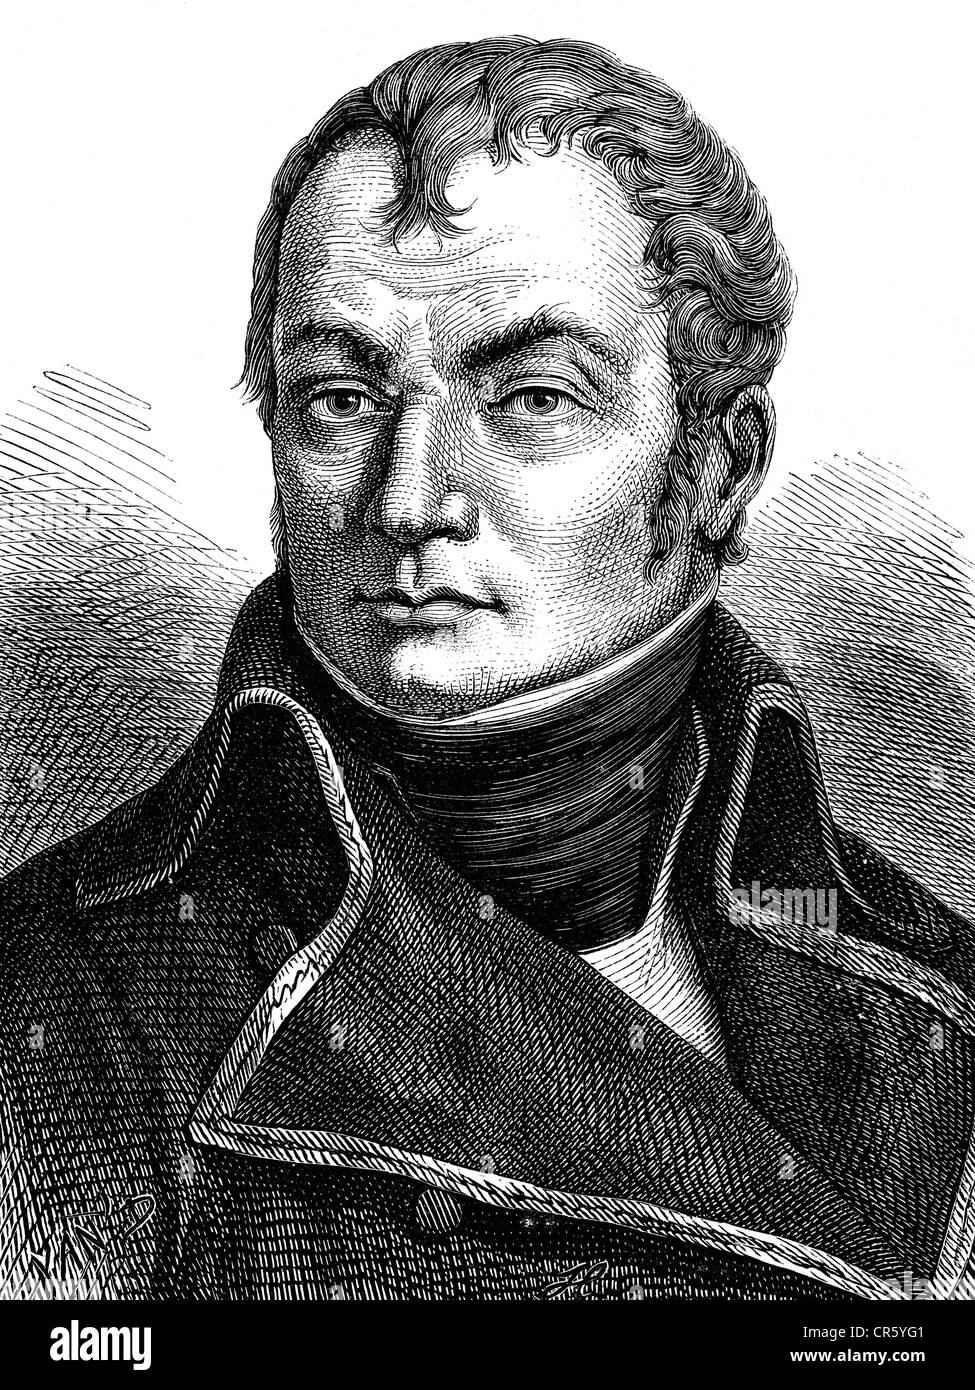 Oudinot, Nicolas Charles, 25.4.1767 - 13.9.1847, French general, portrait, based on portrayal circa 1795, wood engraving, - Stock Image